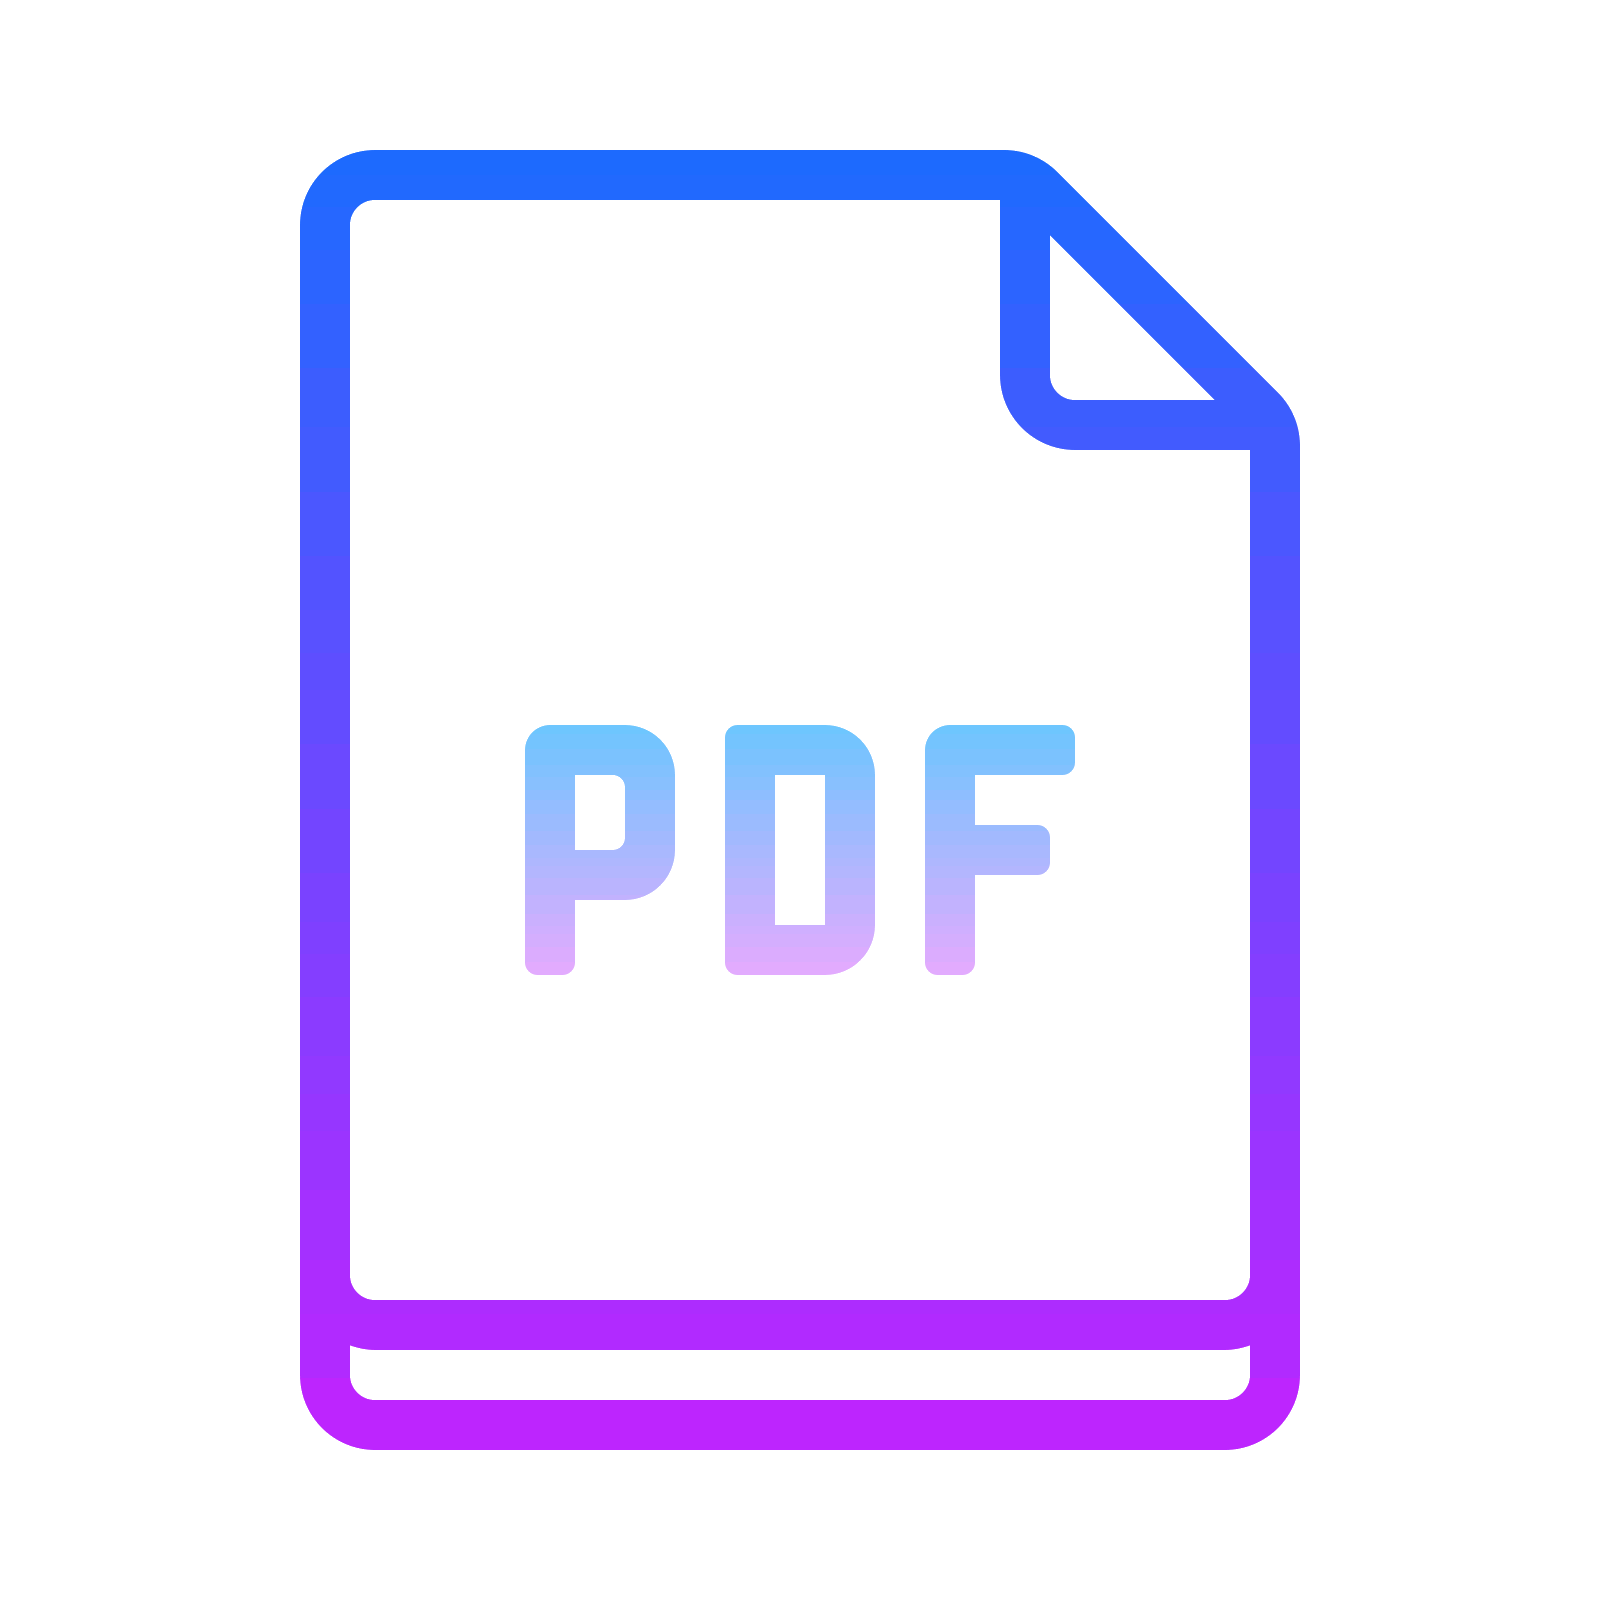 Pdf 2 png. Icon this is a